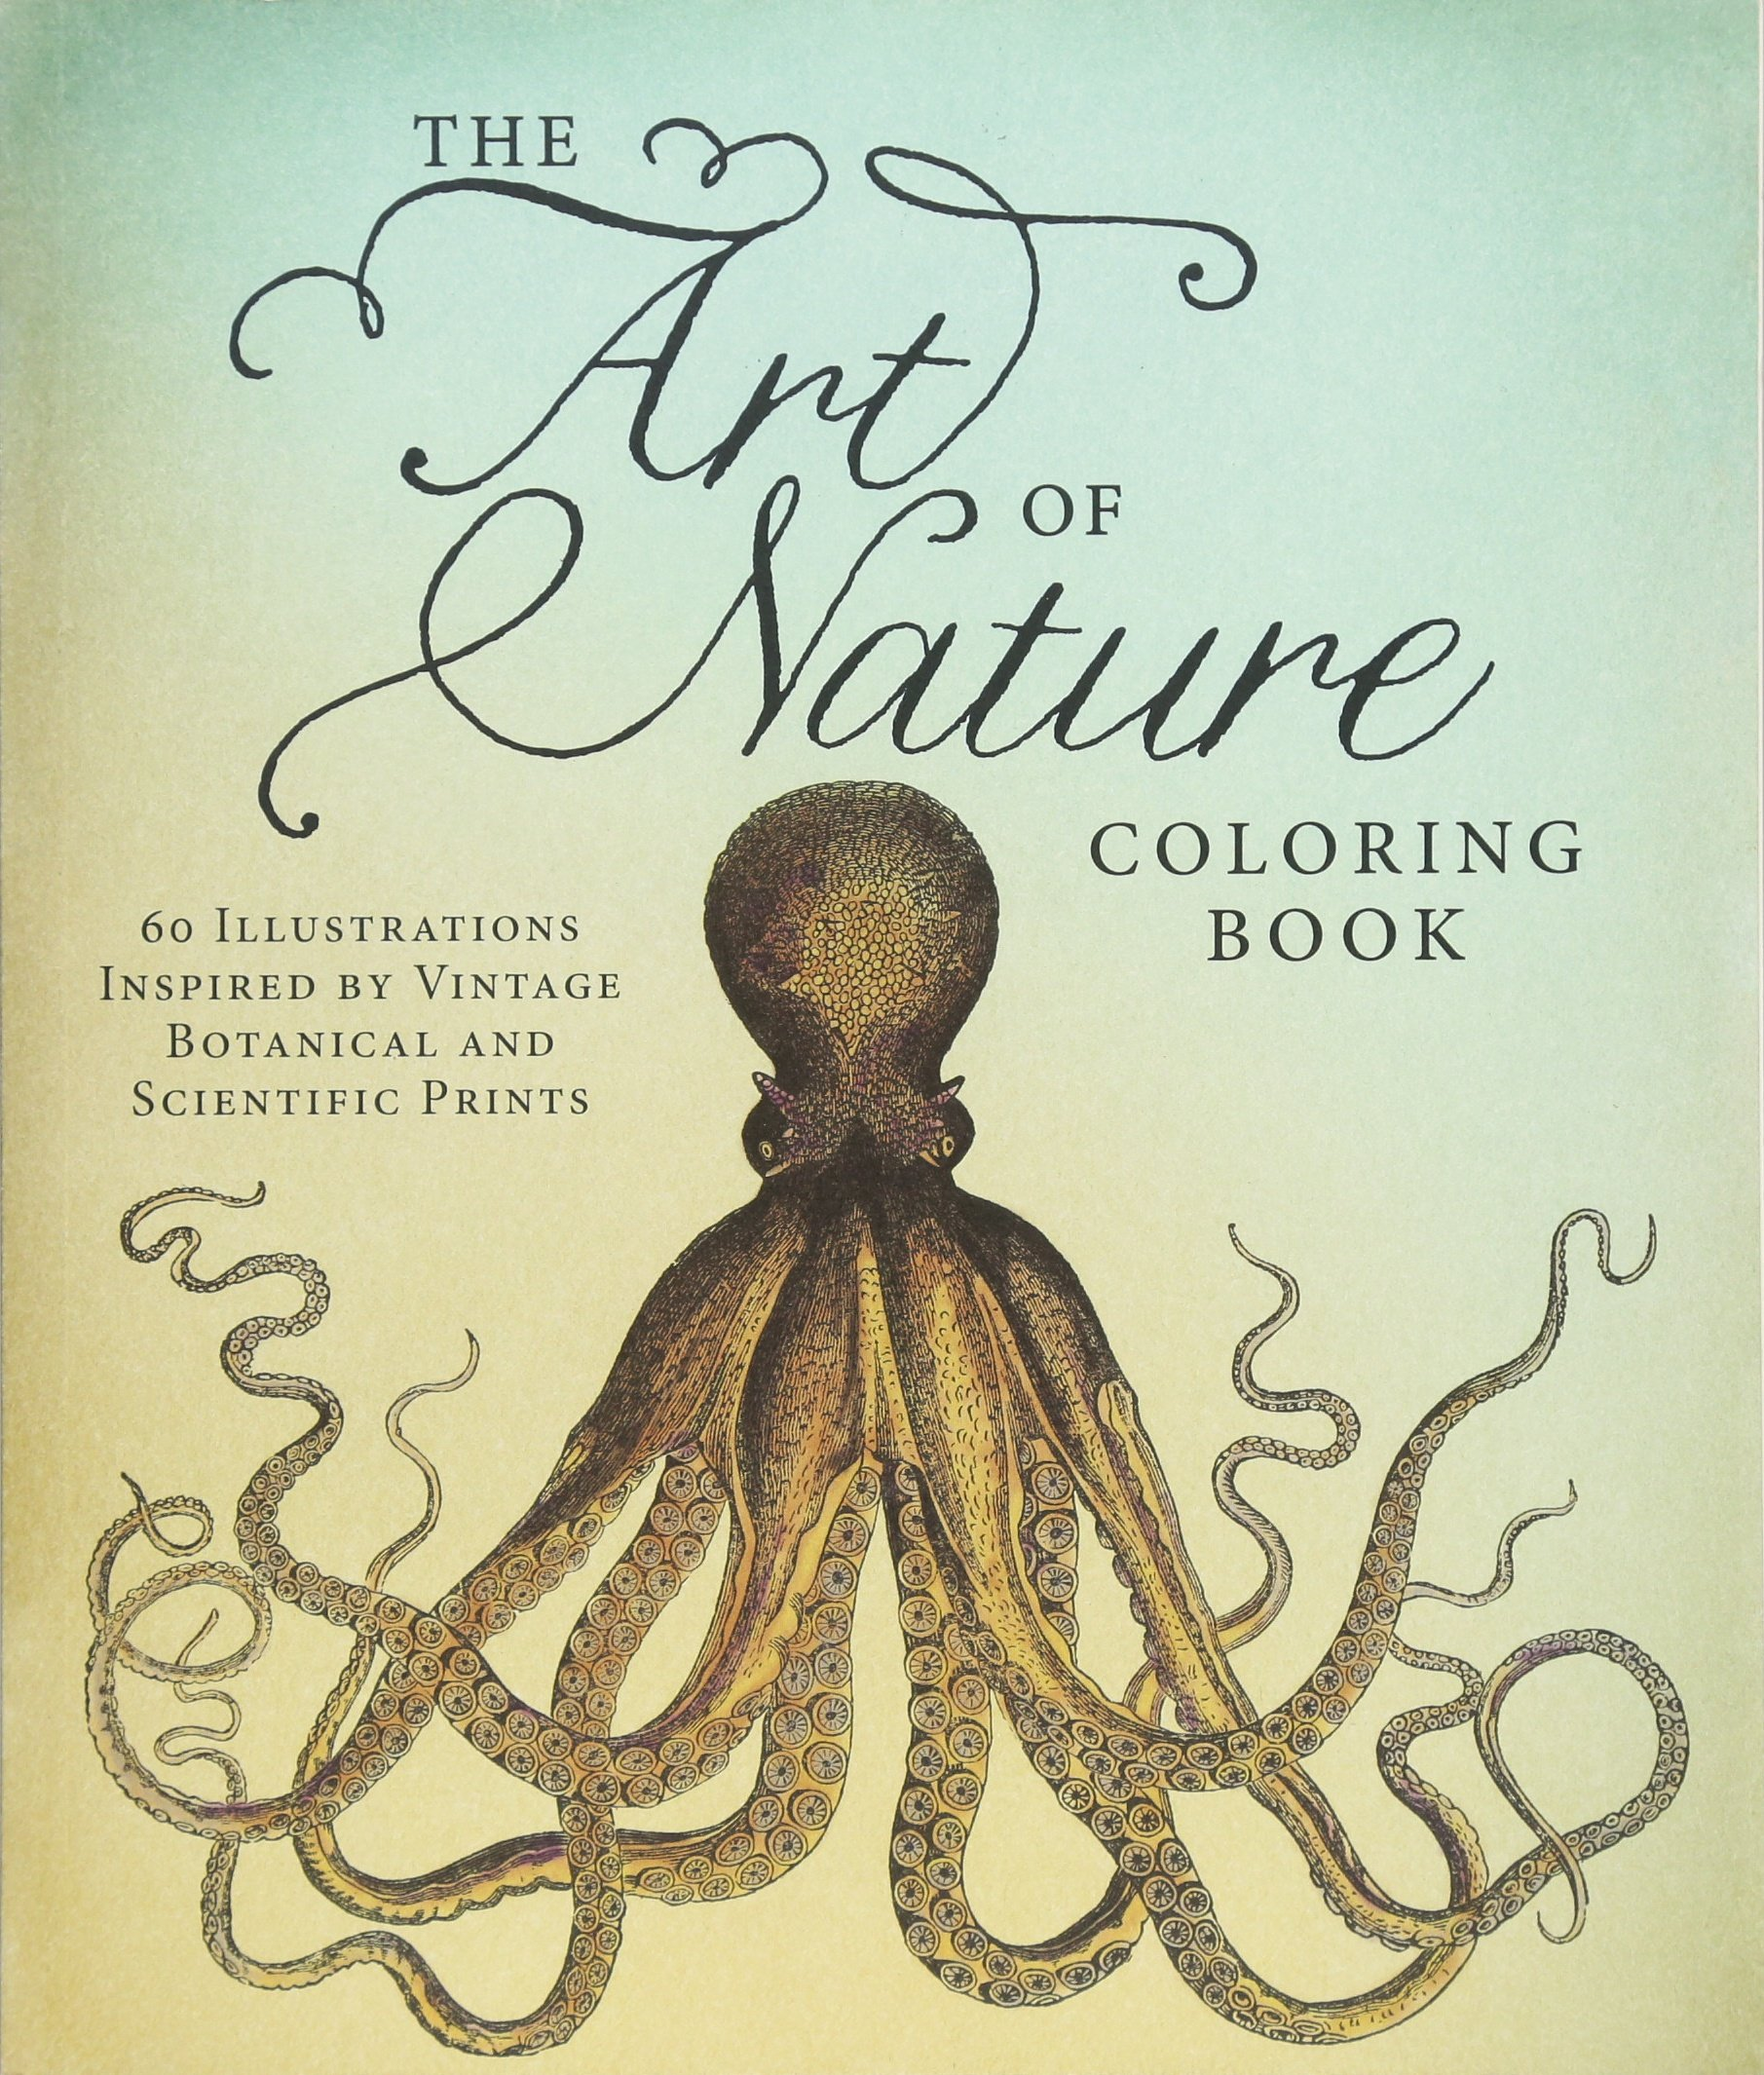 Amazon The Art Of Nature Coloring Book 60 Illustrations Inspired By Vintage Botanical And Scientific Prints 0884408997663 Adams Media Books